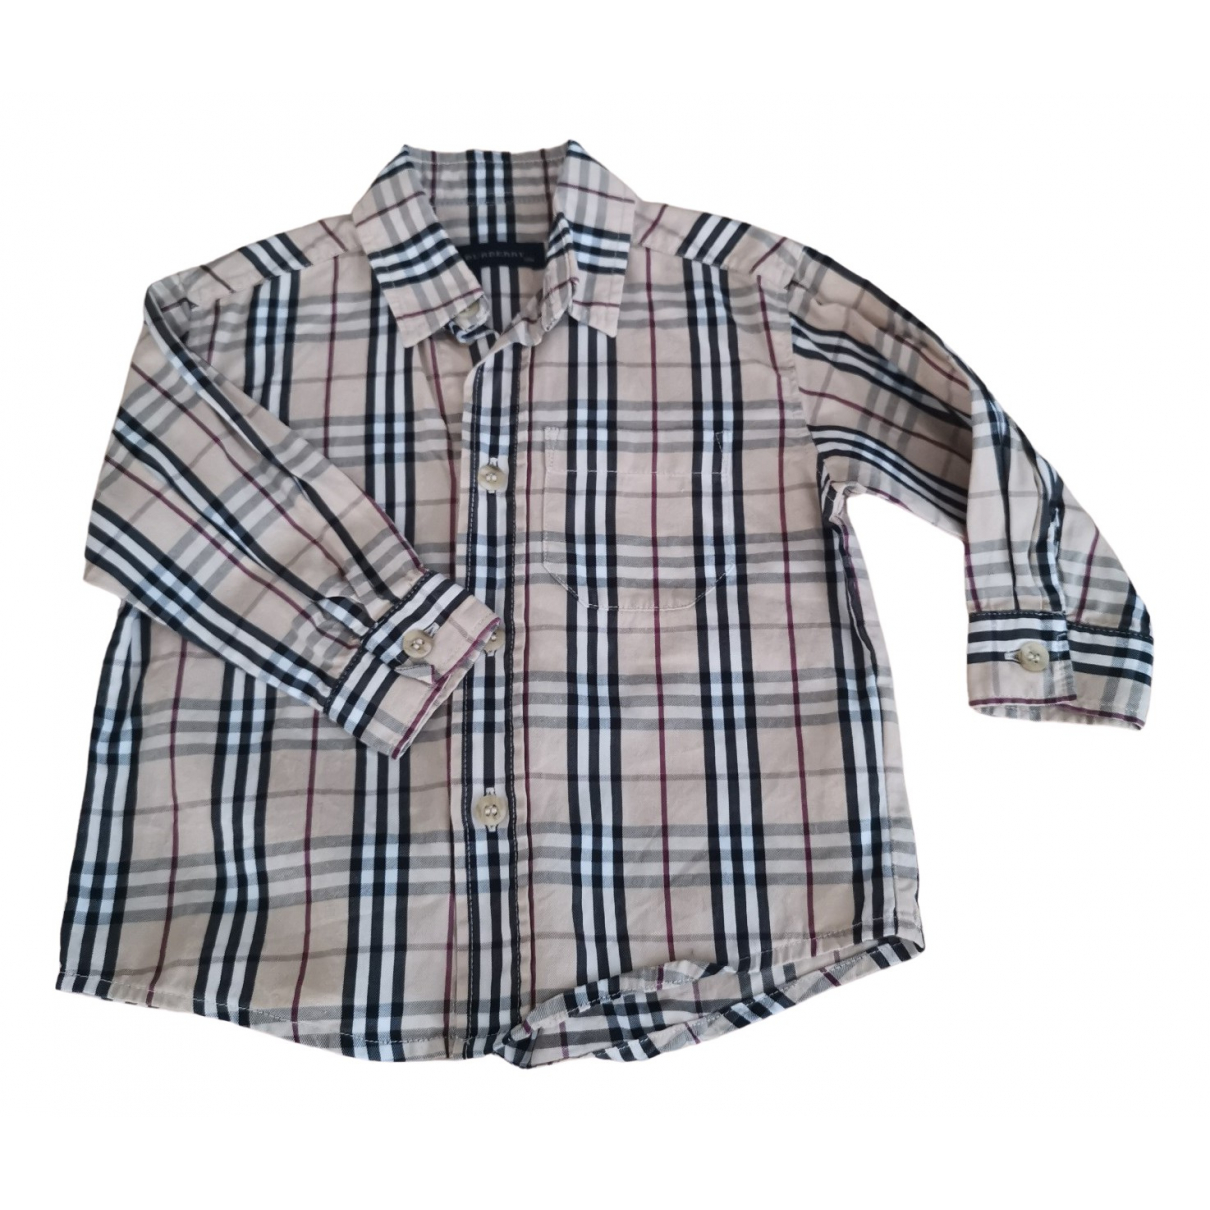 Burberry \N Brown Cotton  top for Kids 12 months - until 29 inches UK